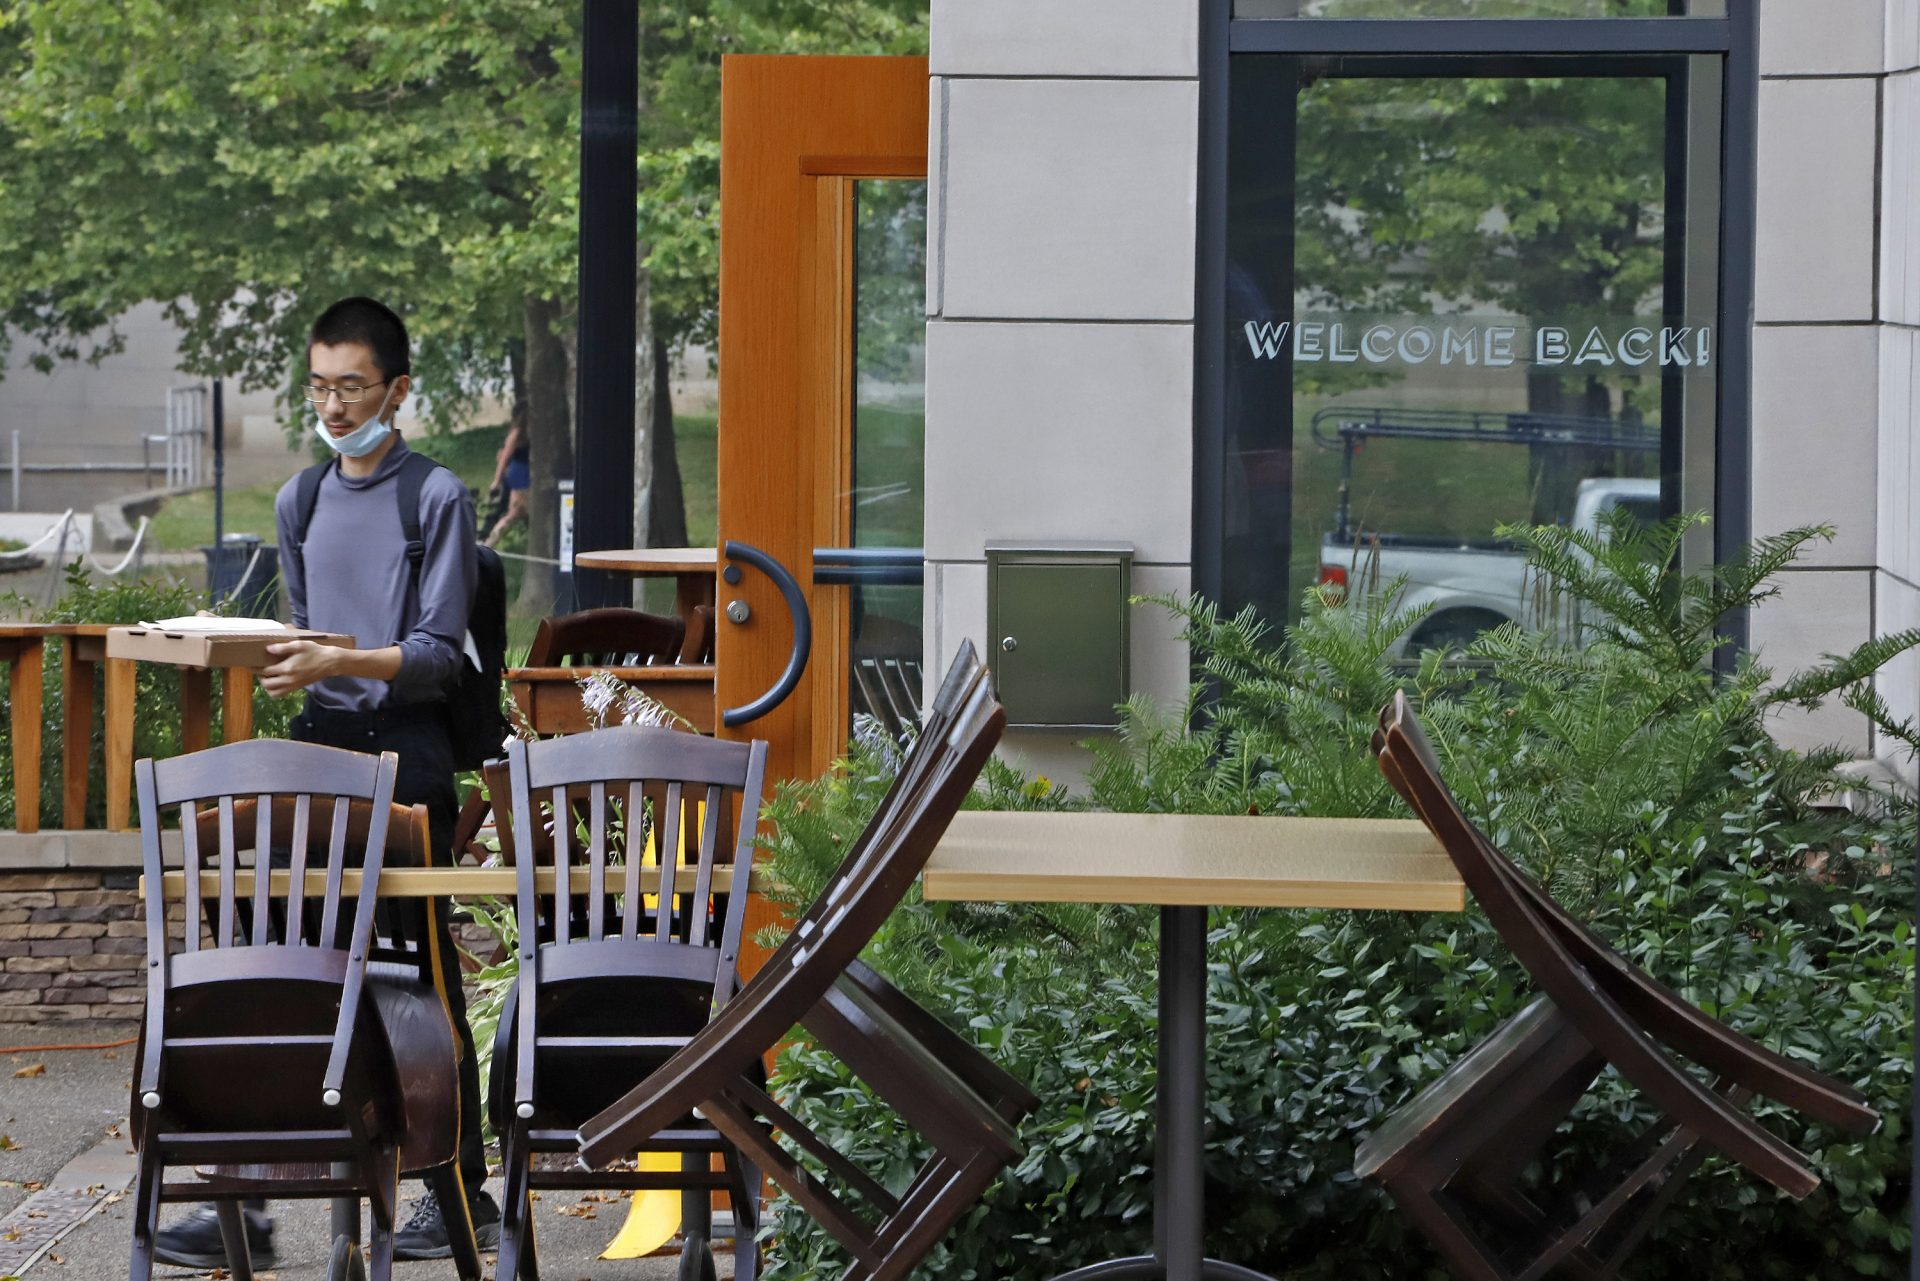 A man walks out of the Porch restaurant with his takeout order on Thursday, July 9, 2020 in the Oakland neighborhood of Pittsburgh. Due to a spike in COVID-19 infections, service at restaurants has been limited to takeout for the past week. Beginning Friday, restaurants will re-open for outside dining only.